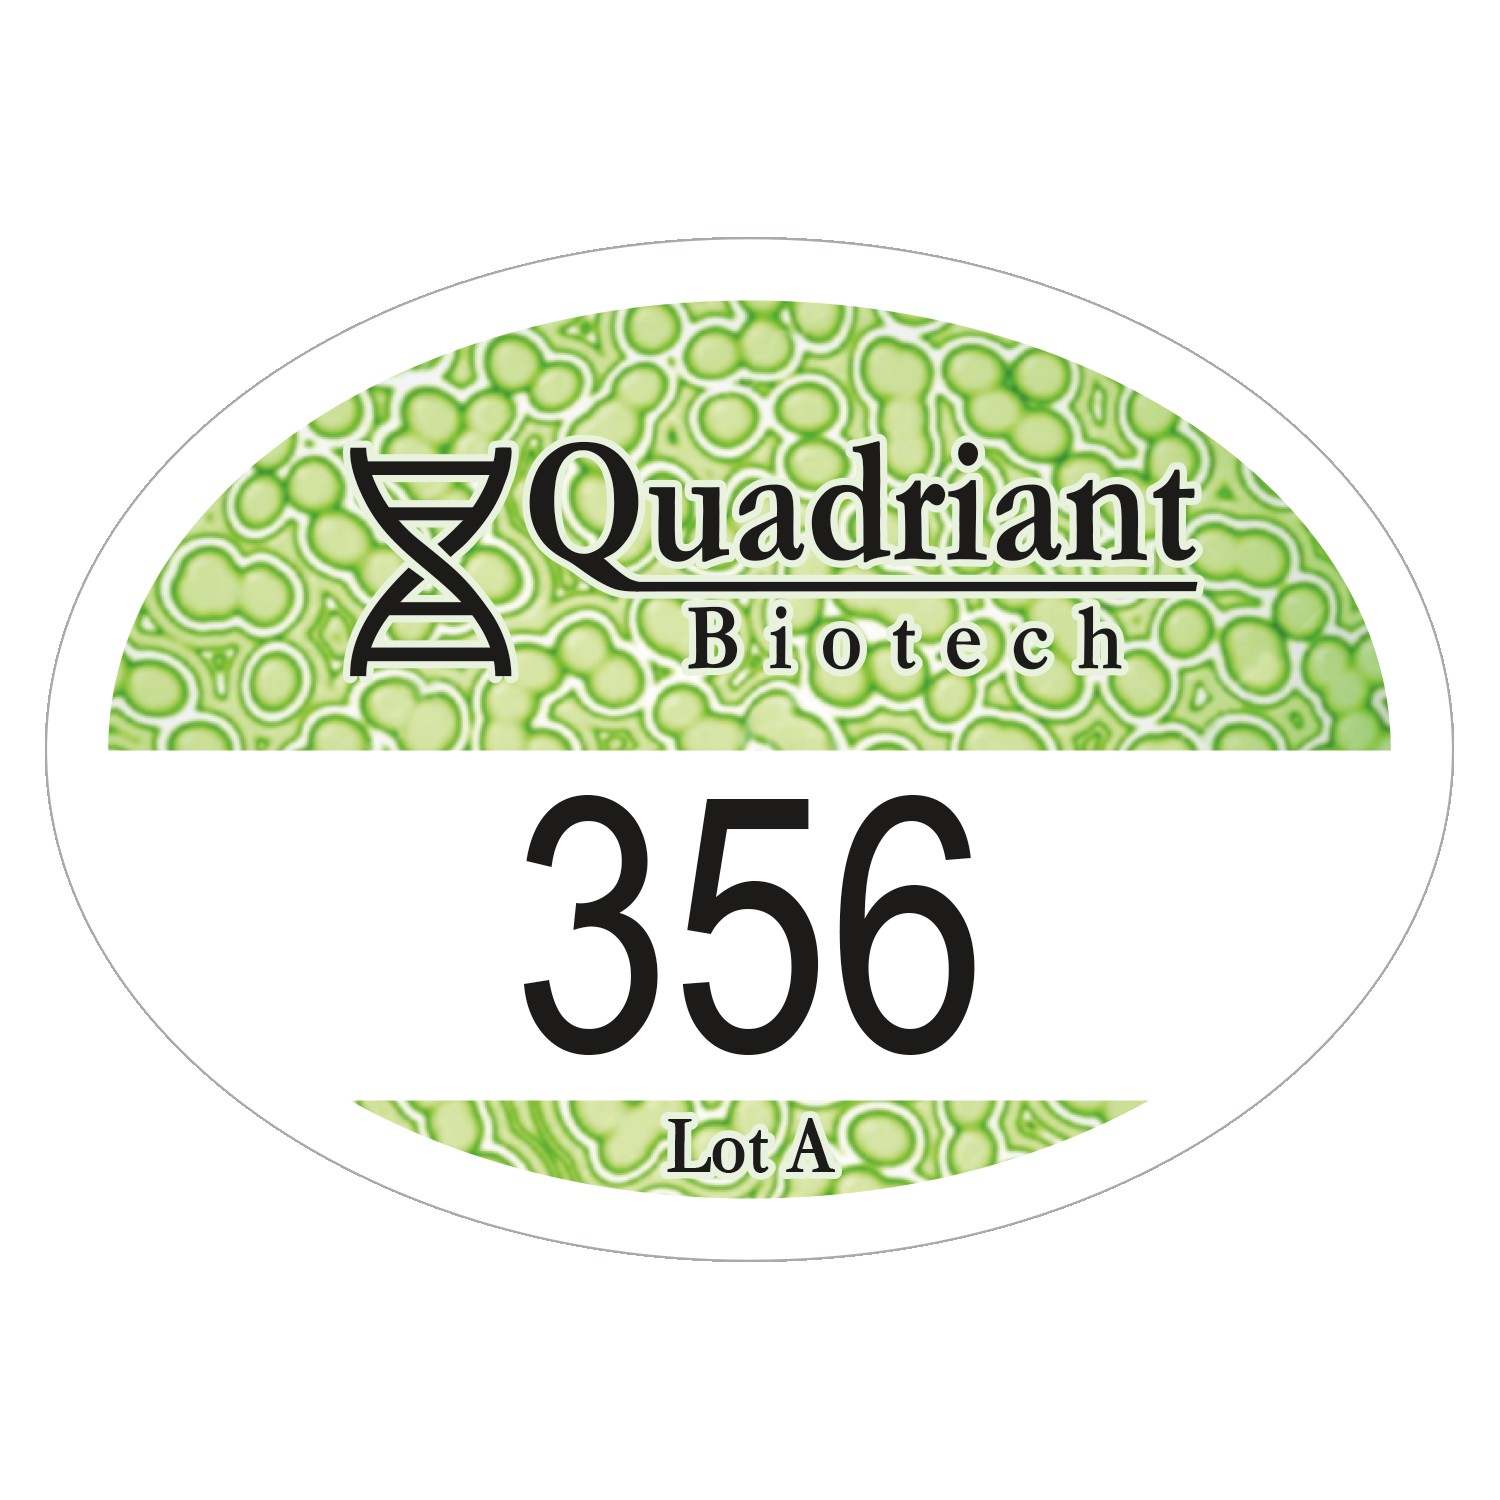 "145932497-183 - Oval White Vinyl Full Color Numbered Outside Parking Permit Decal (2""x2 3/4"") - thumbnail"